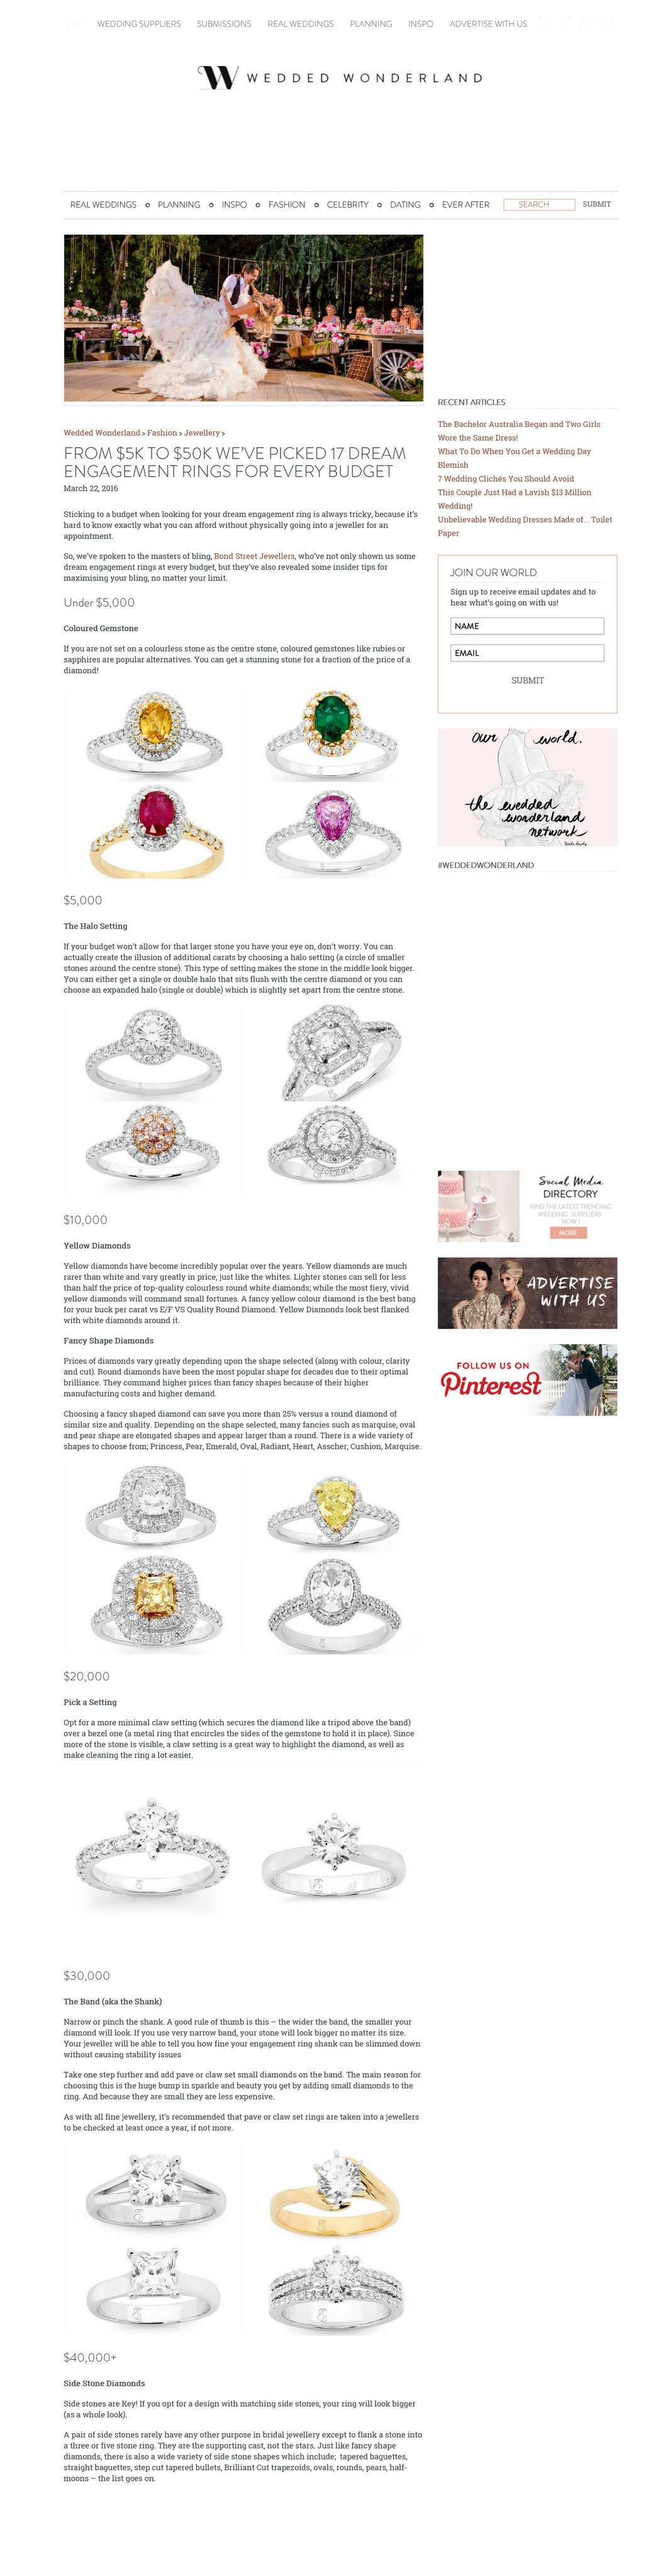 Bond Street Jewellers - News and Media - As seen in - Weddedwonderland